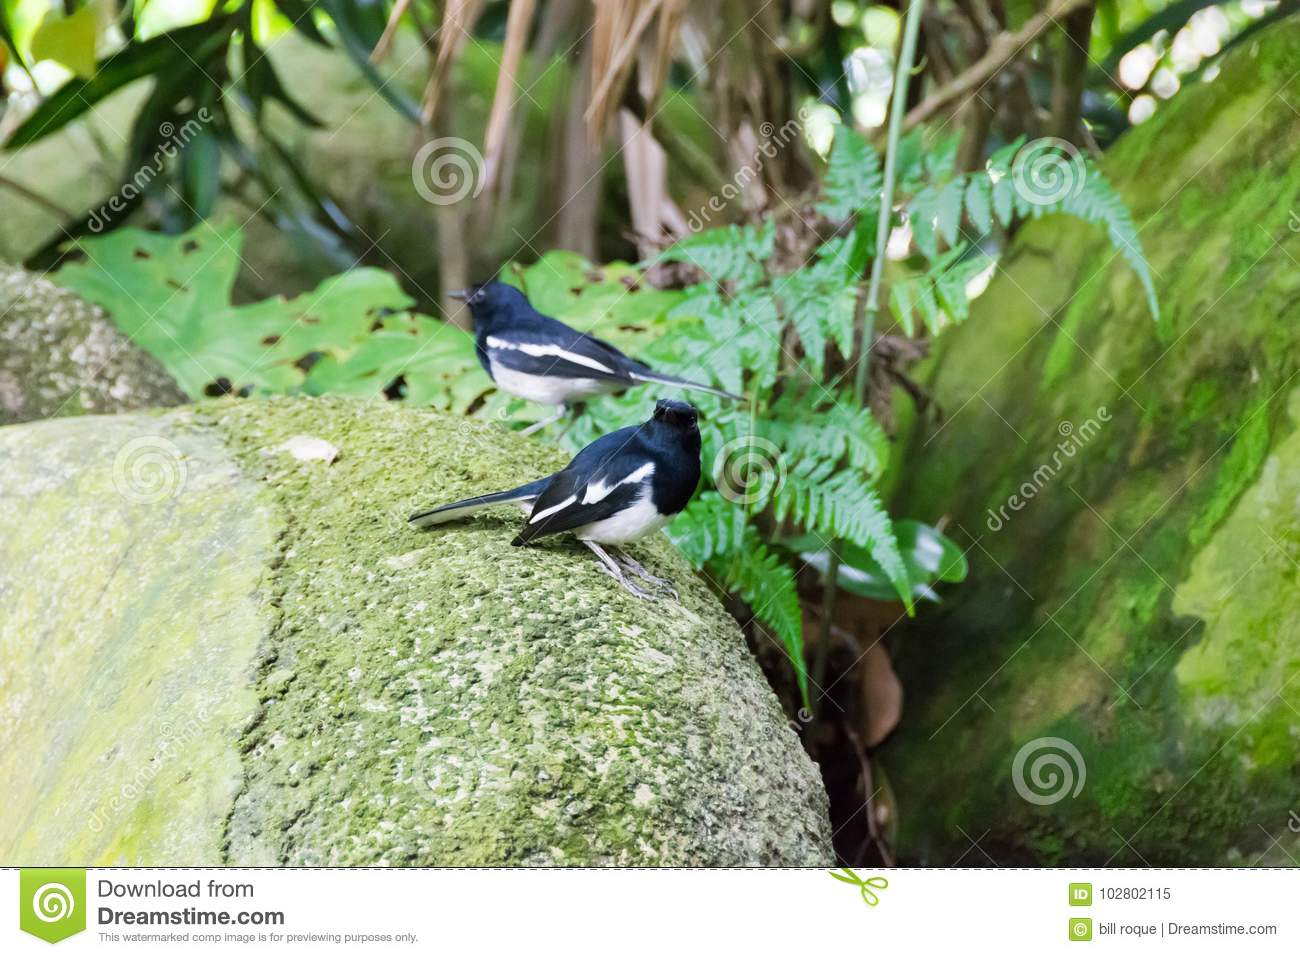 A Bird Resting In Isolation On A Rock Stock Image